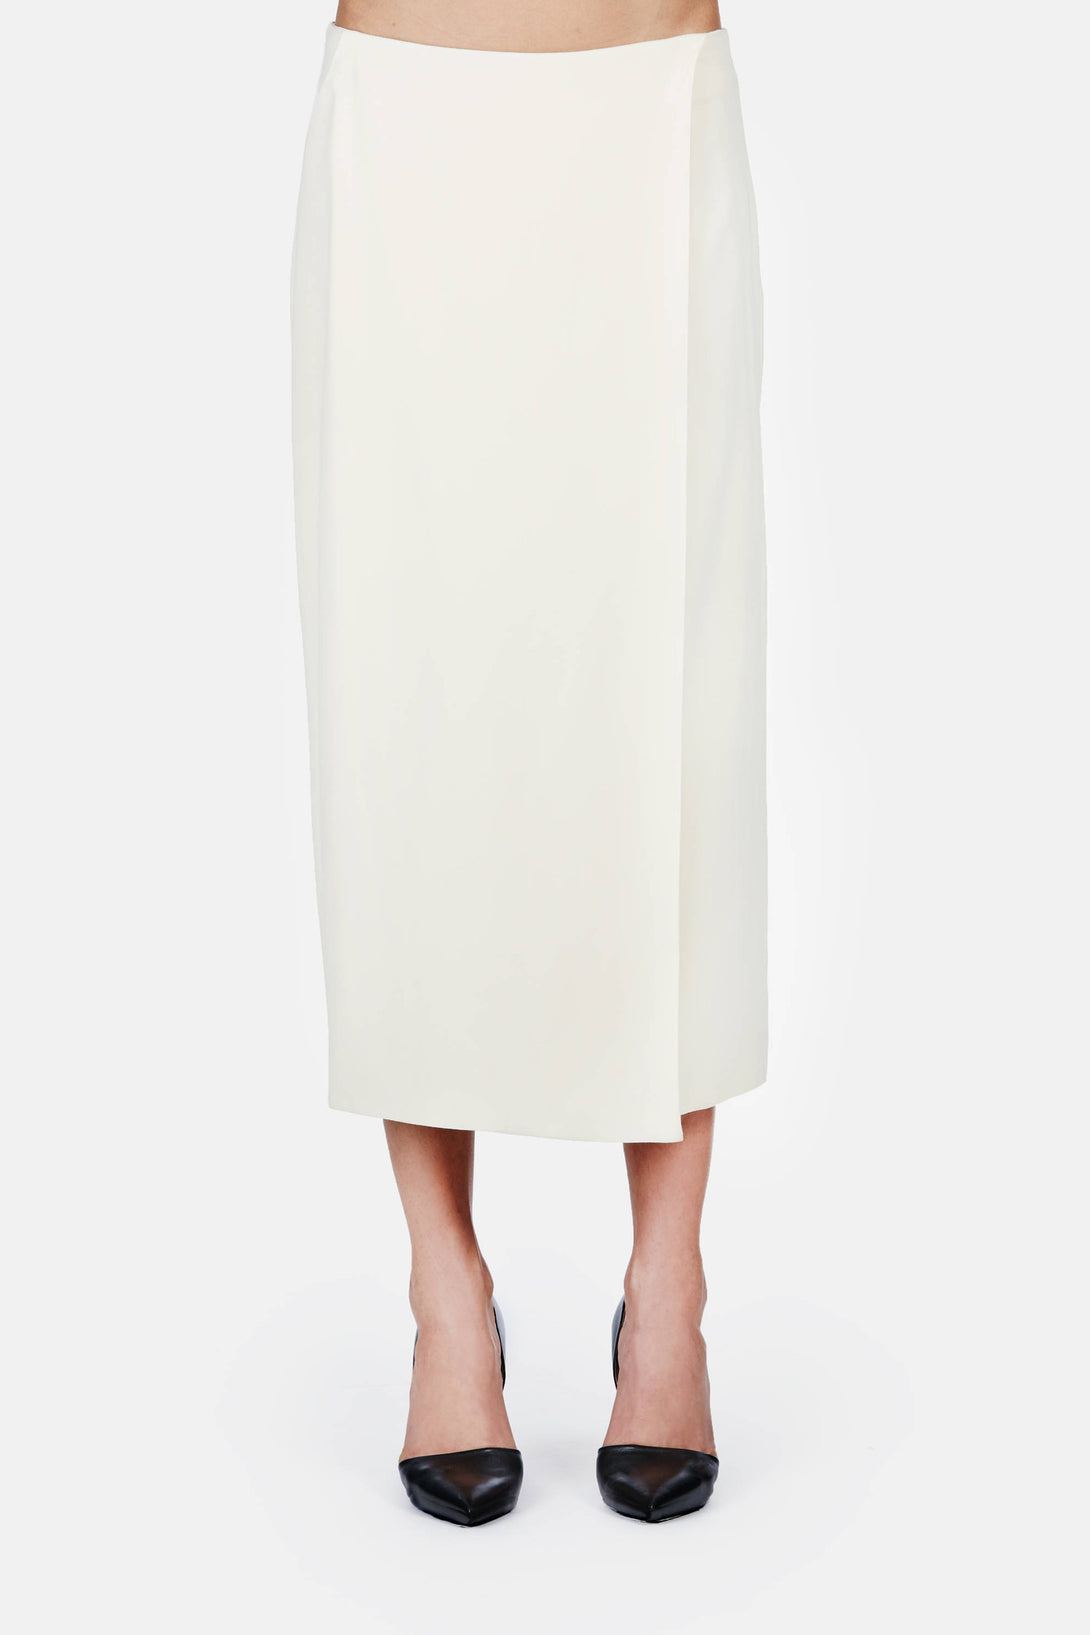 Mid-Calf Pencil Skirt - Ivory